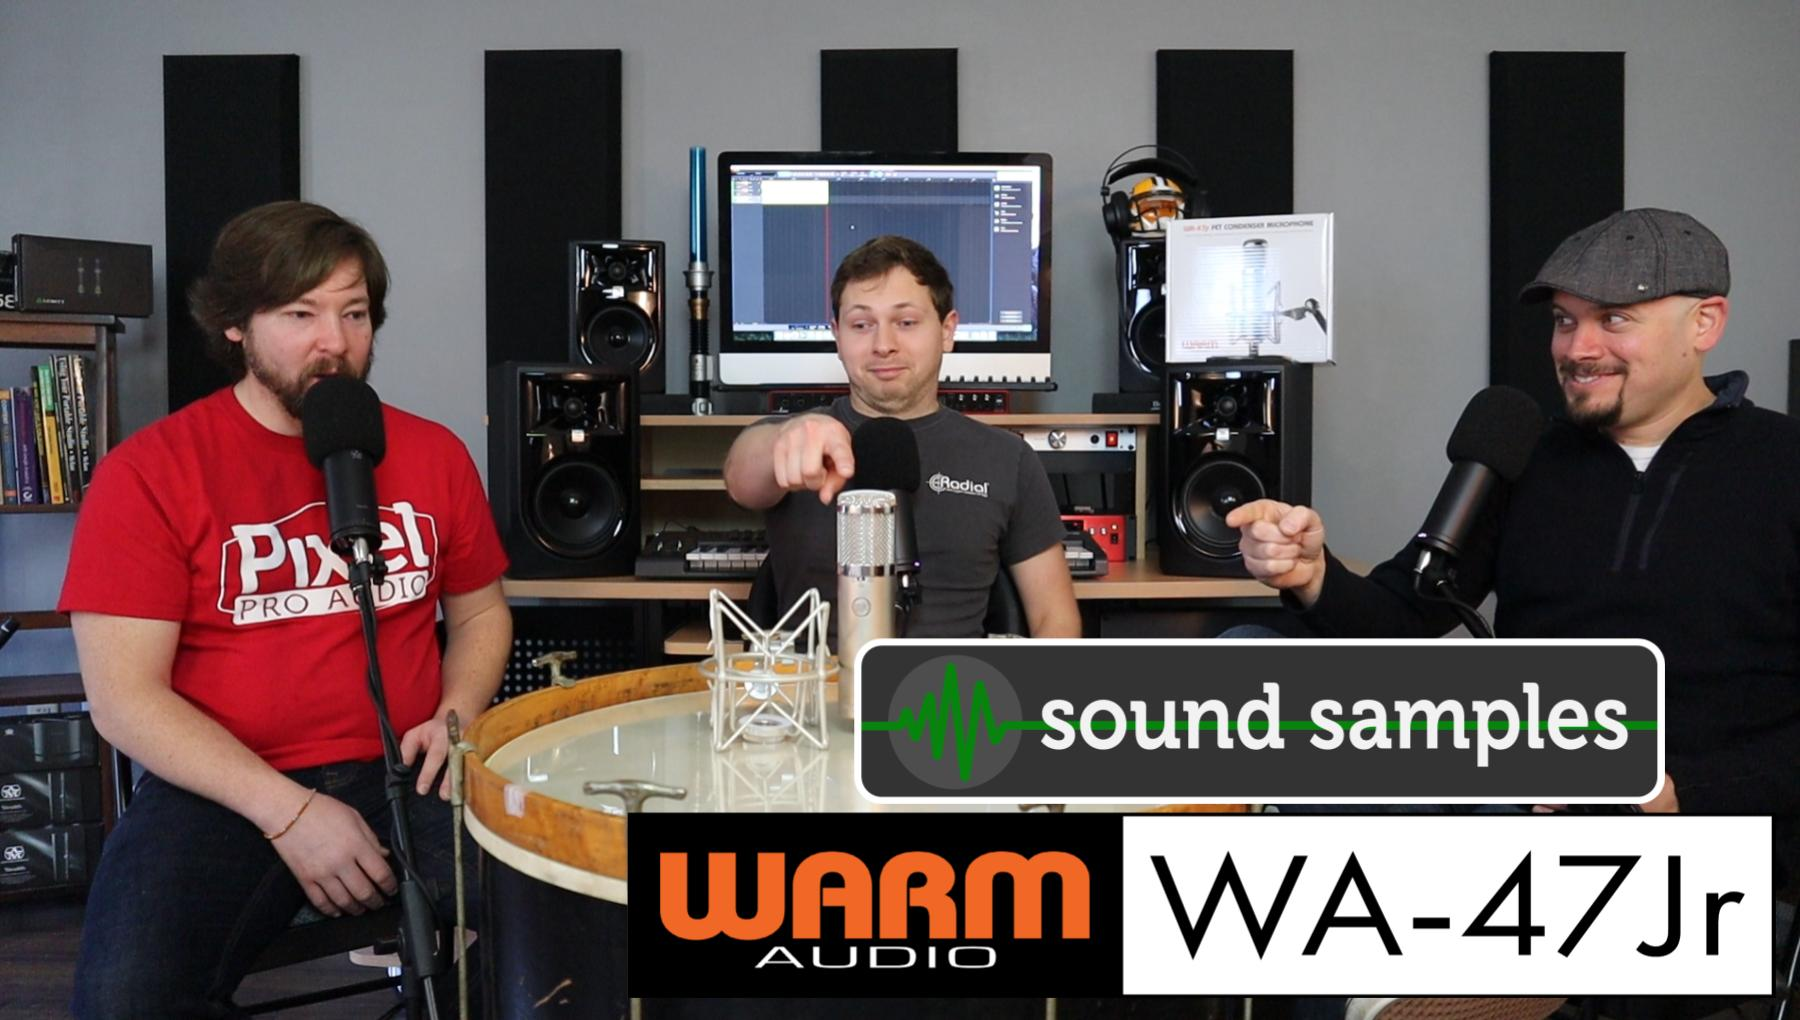 Weekly Show - PPA Unfiltered - Warm Audio WA-47 Jr - Sound Samples!